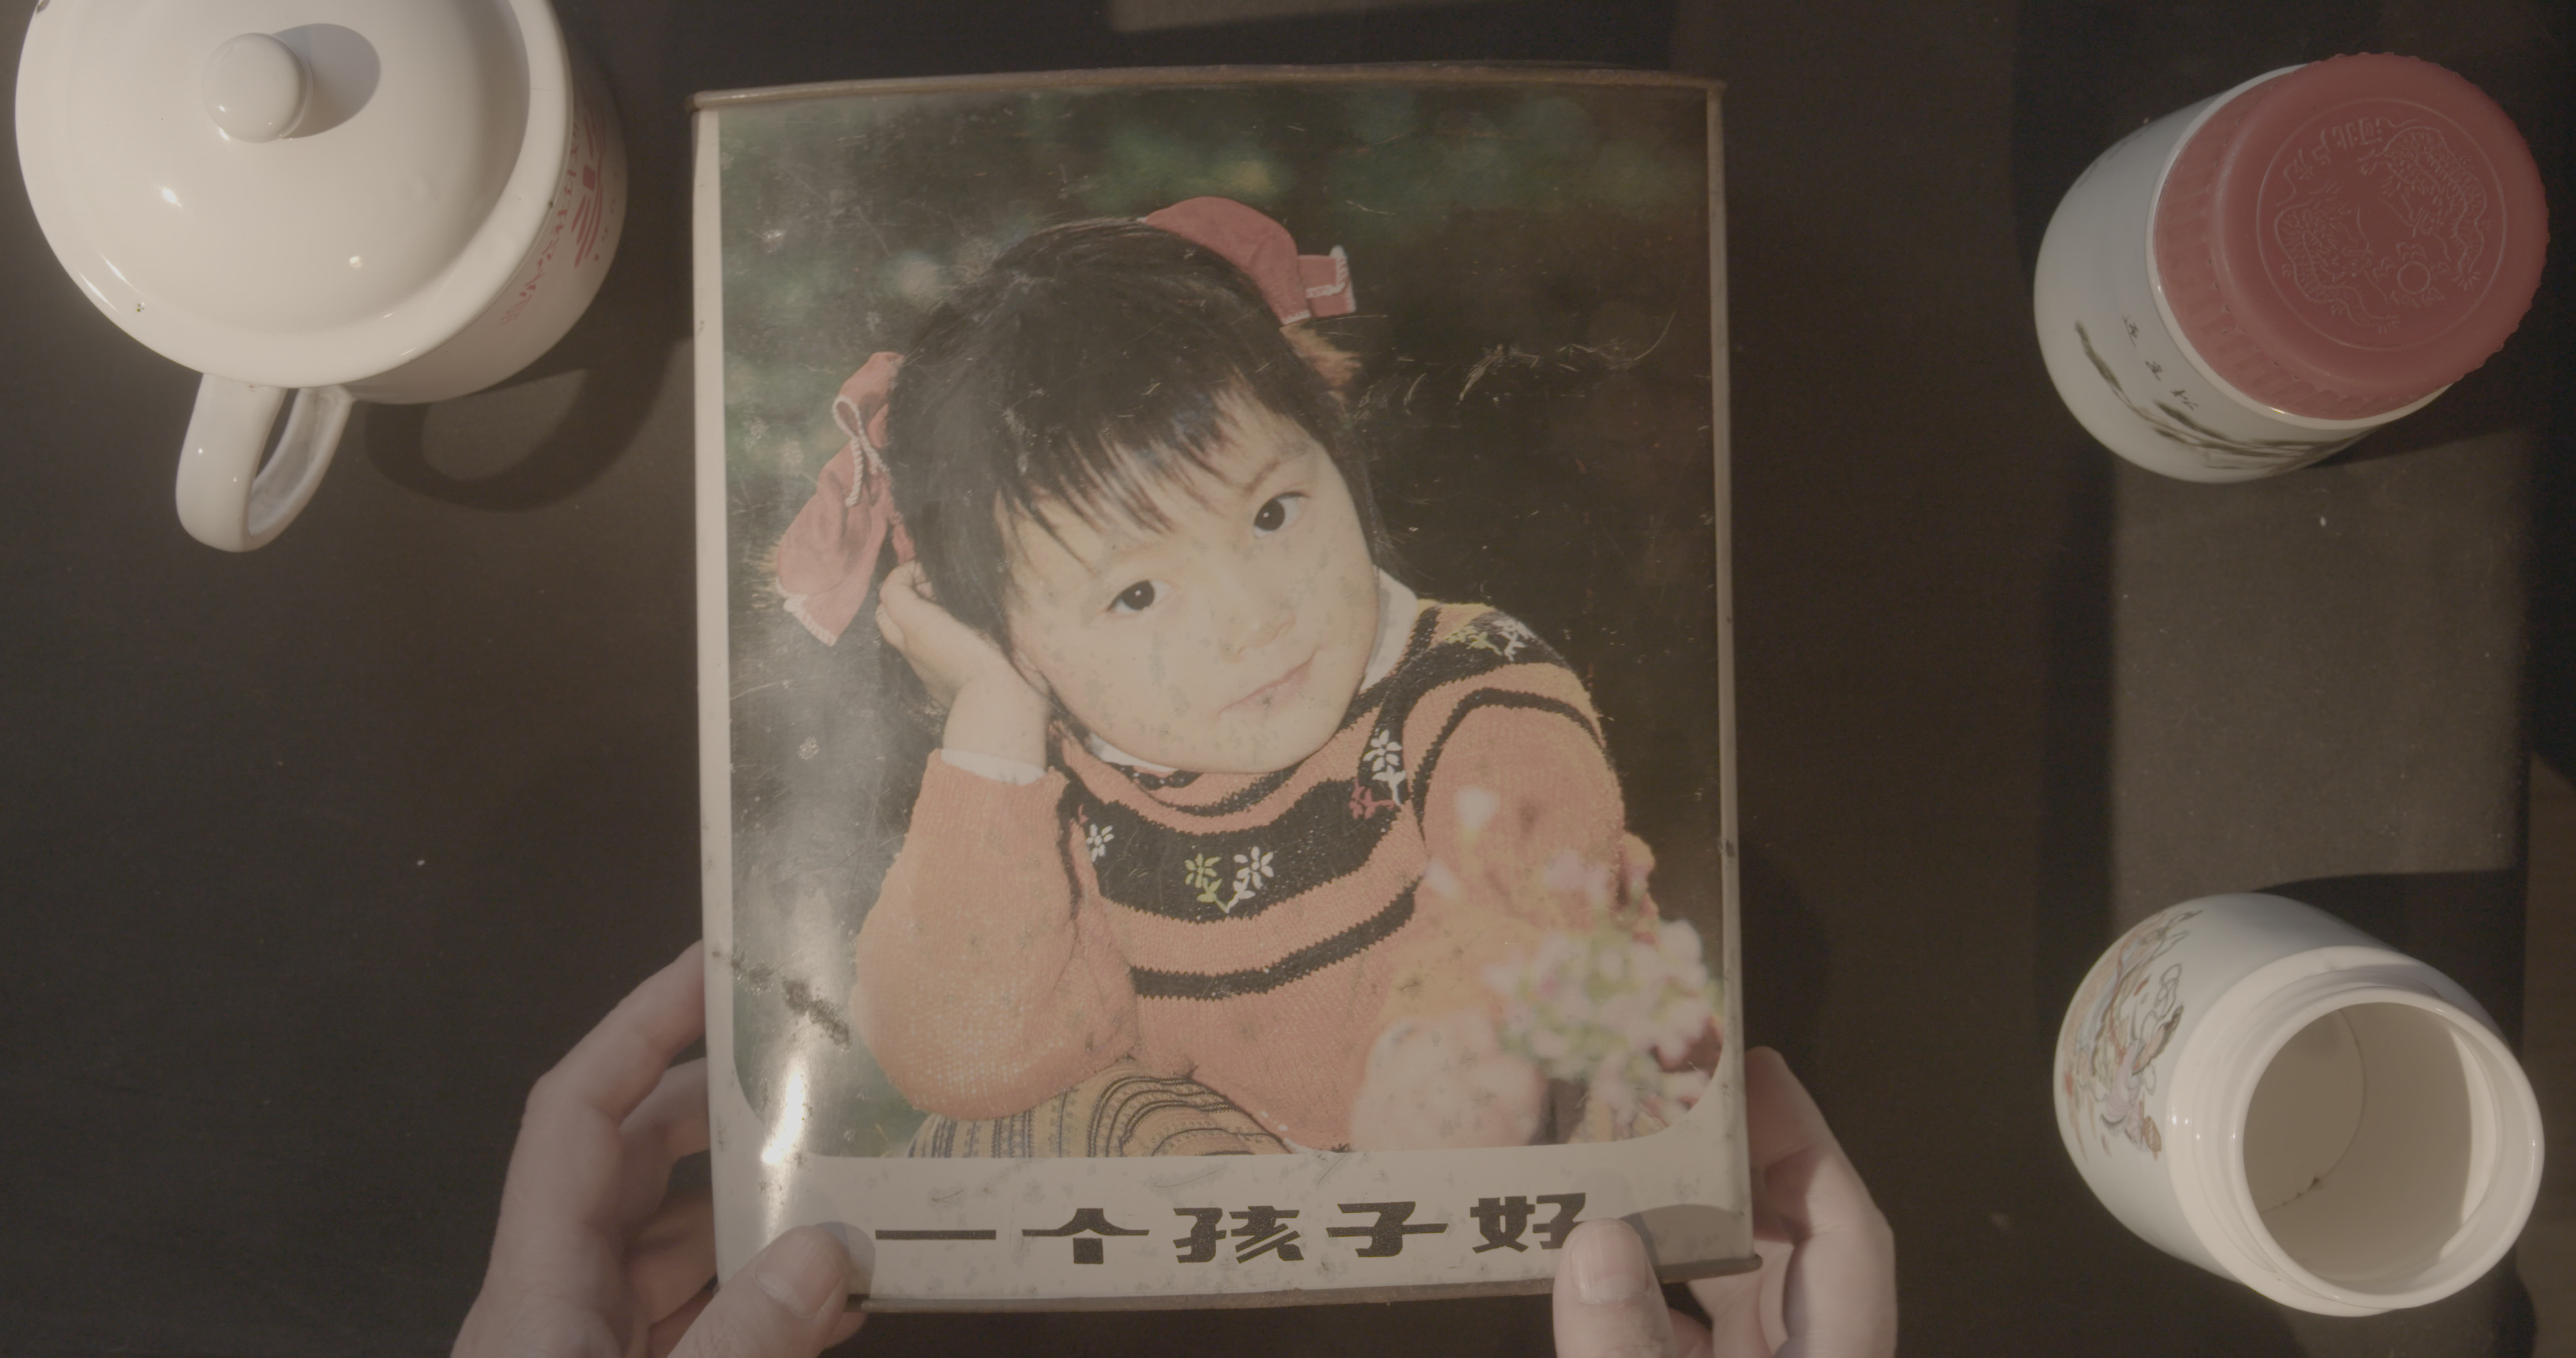 A still from One Child Nation showing a photograph of a young Chinese girl.